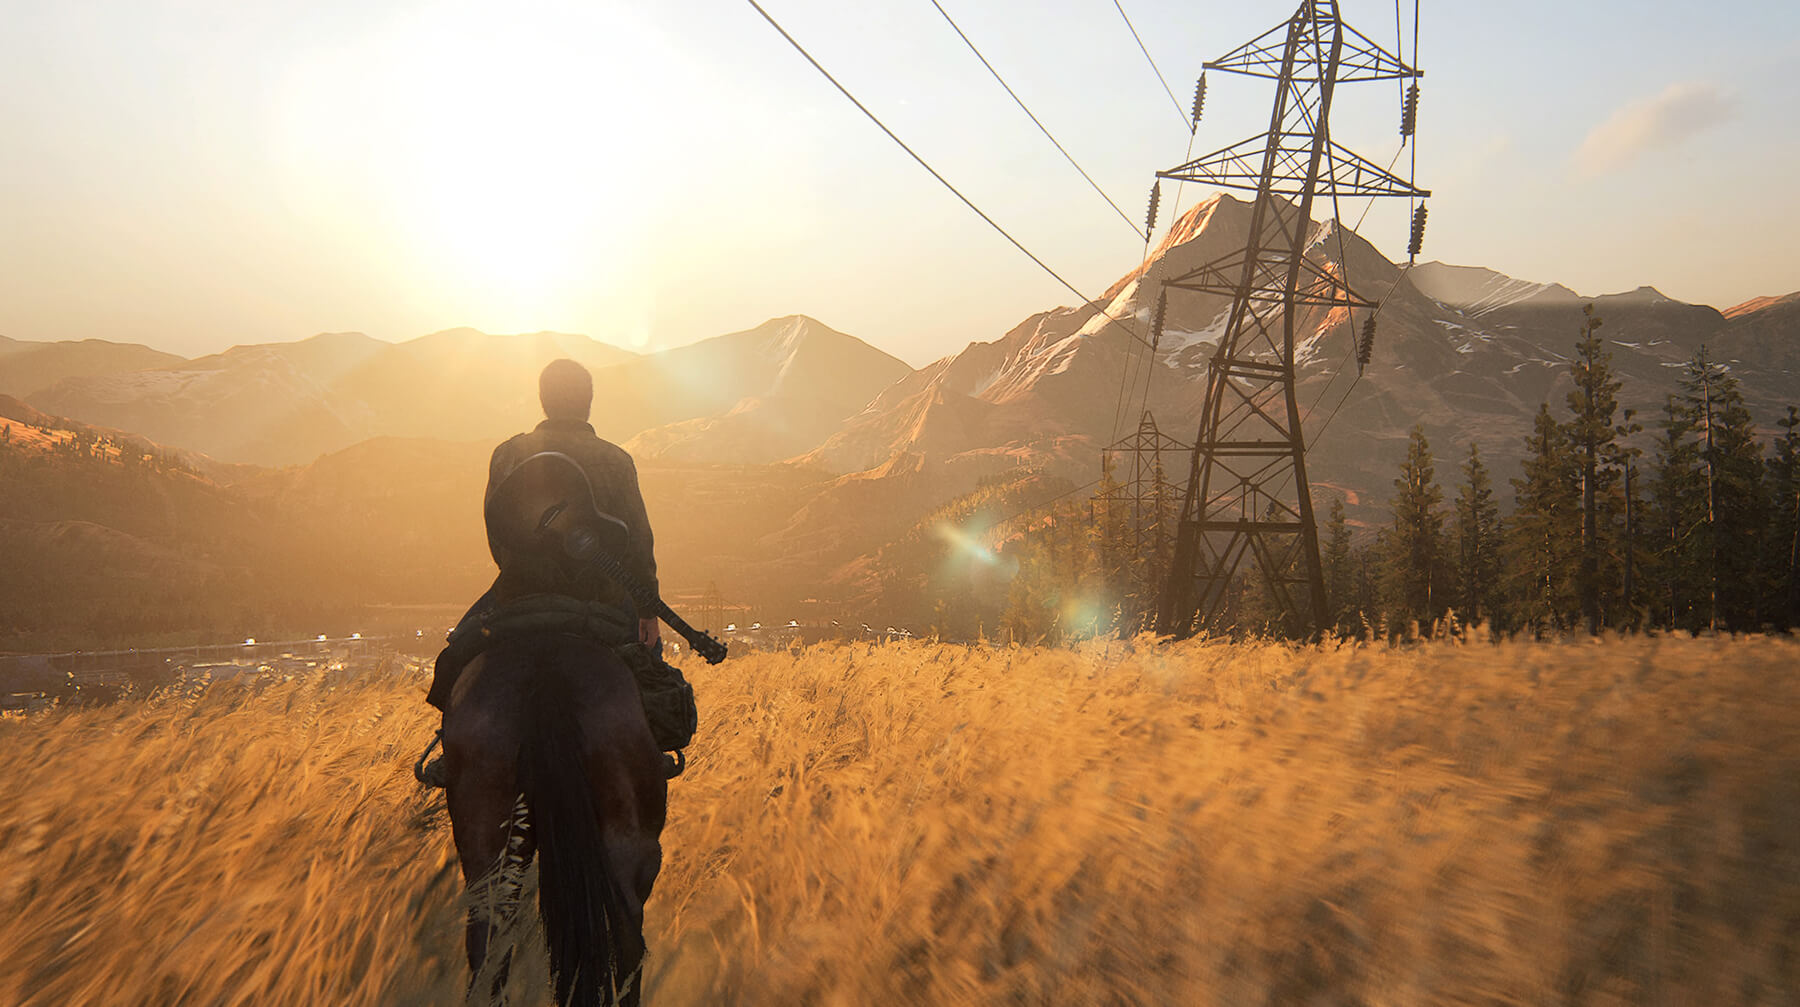 Ellie rides on horseback over a golden field with mountains in the background